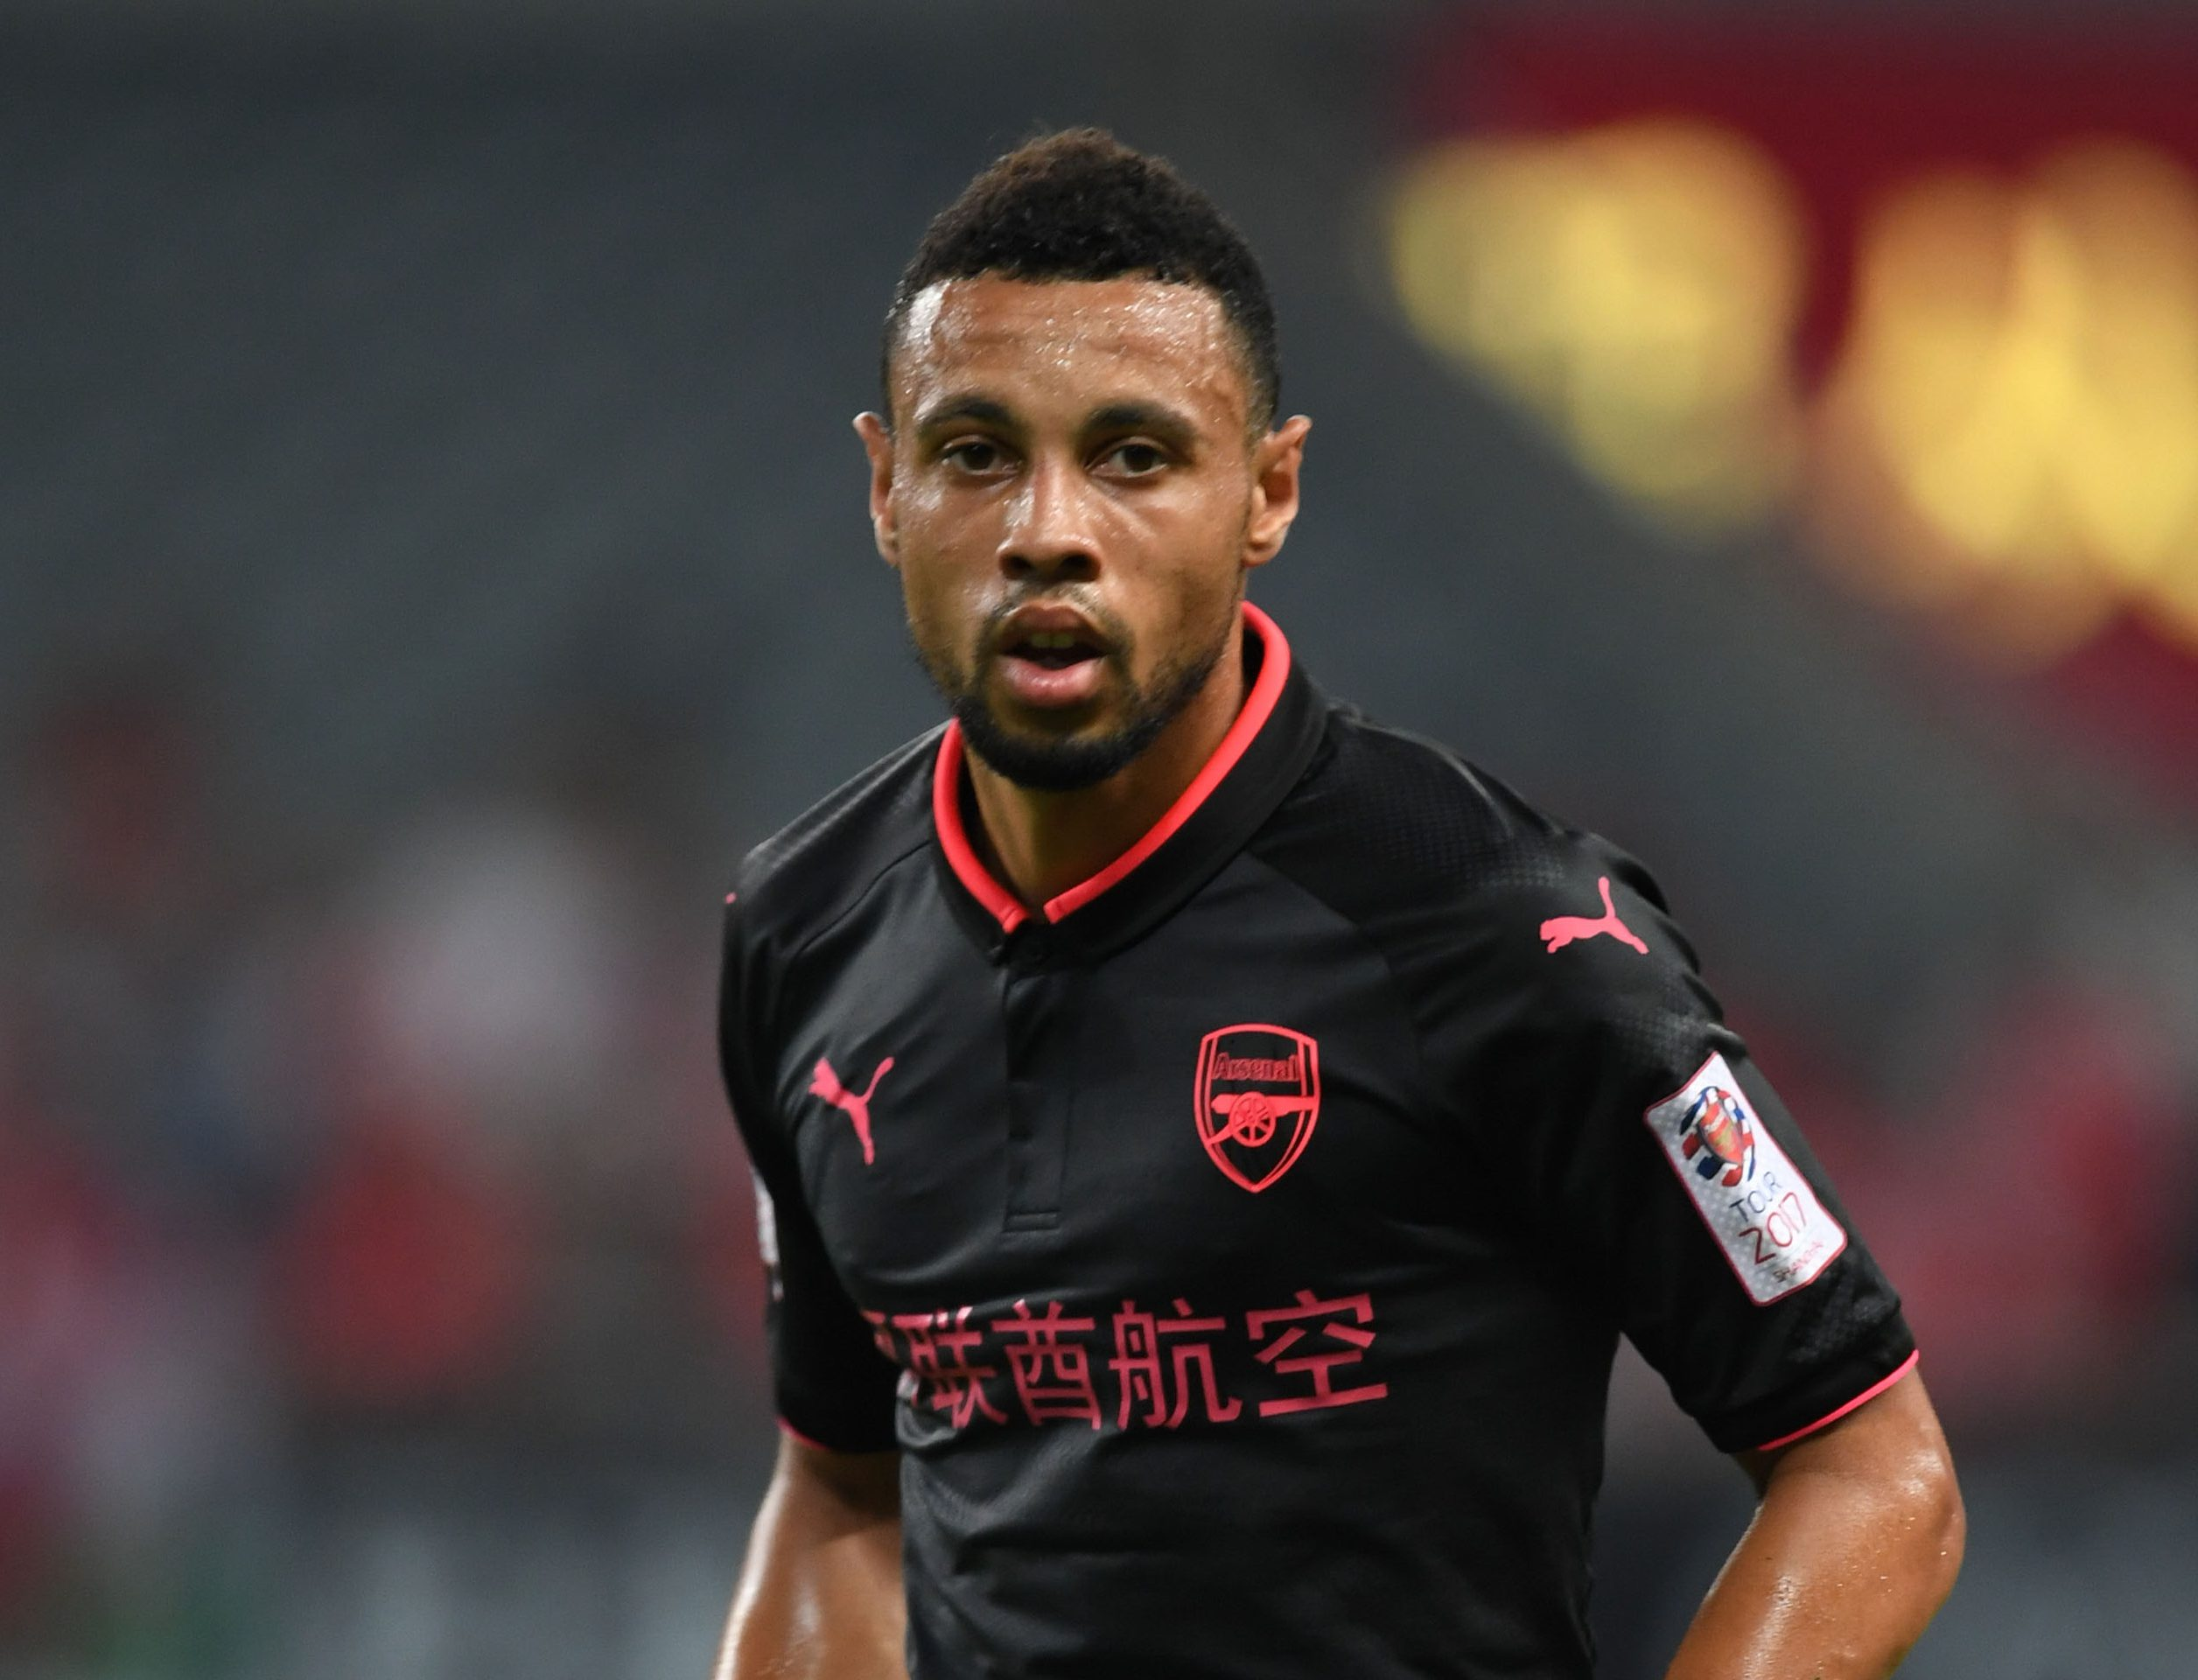 Arsenal's Francis Coquelin praises Chris Willock for sealing Benfica transfer